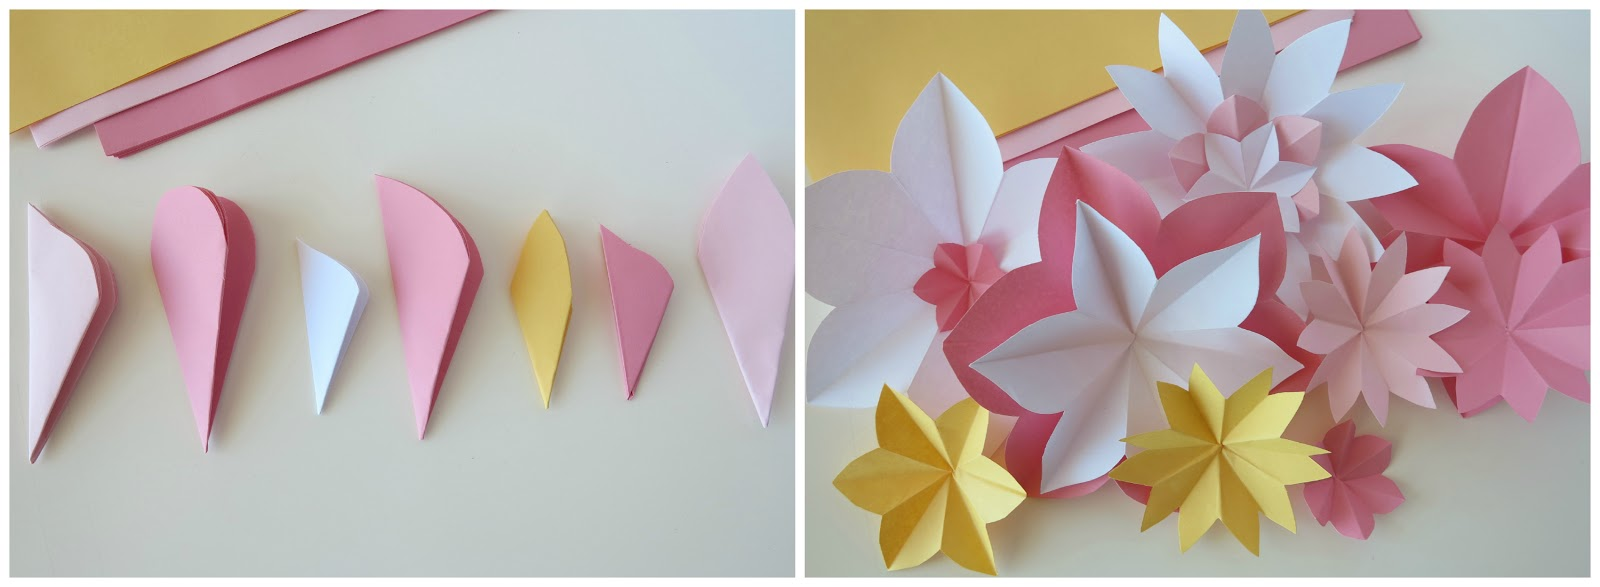 Tissue paper flowers step by step